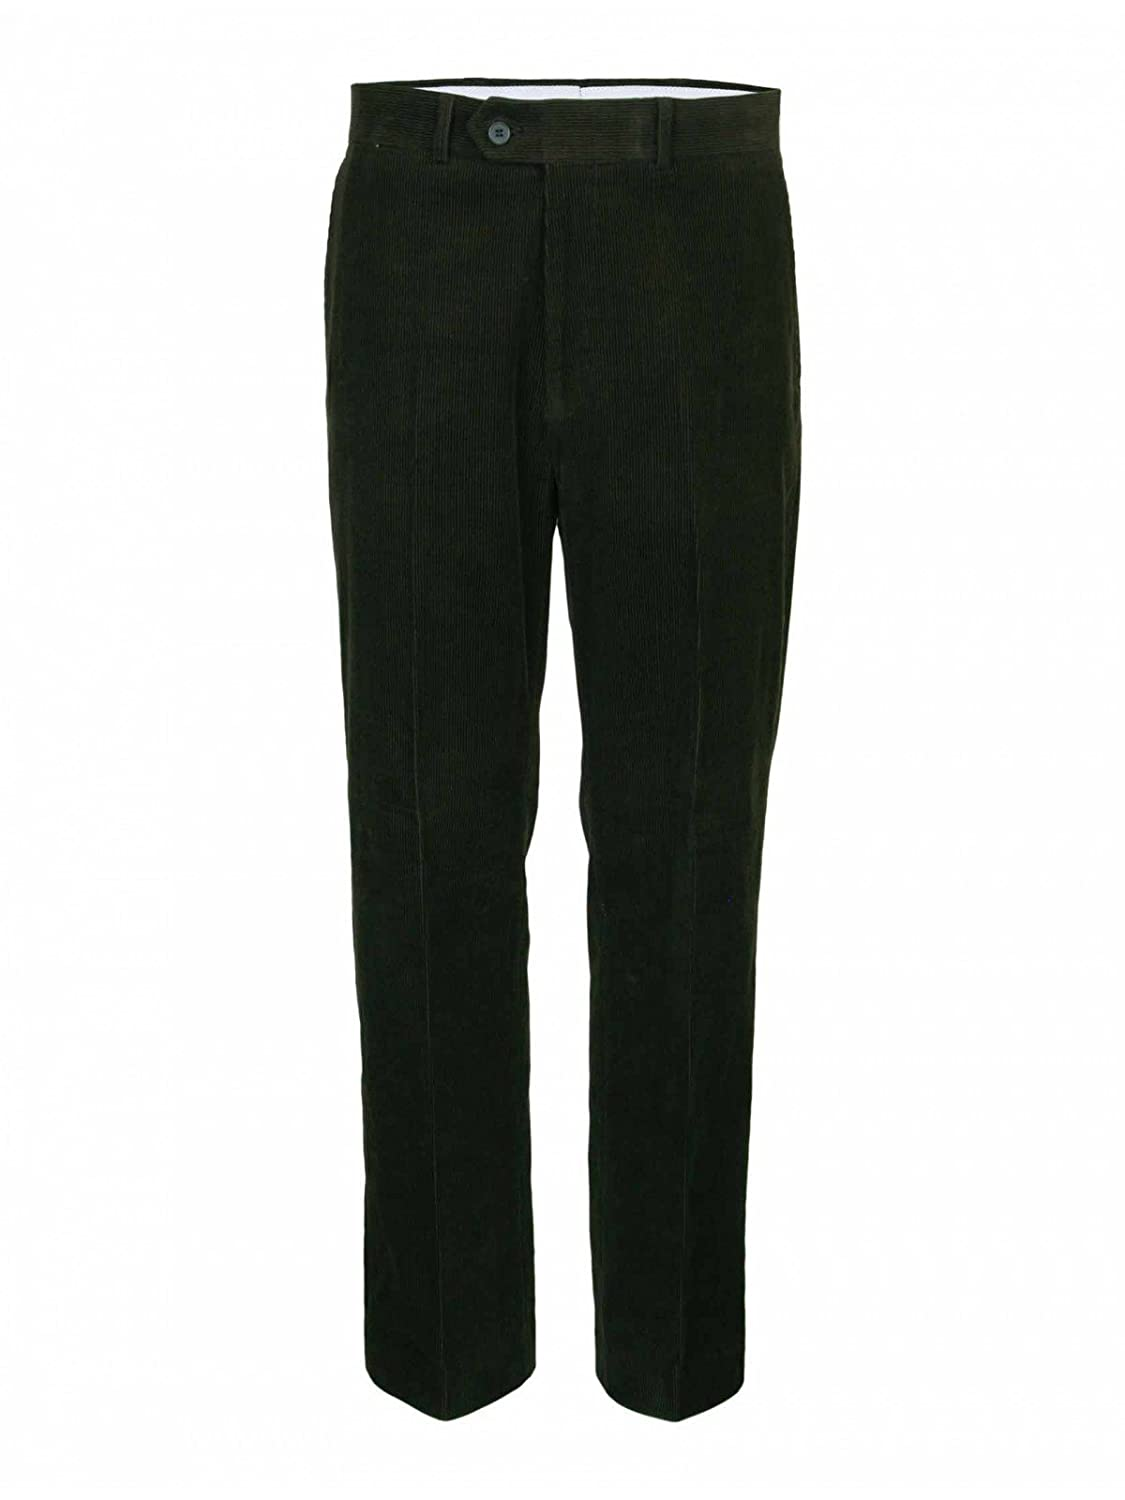 Men's Classic Cord Trousers [32-44] [7 Colors] DELUXE-07